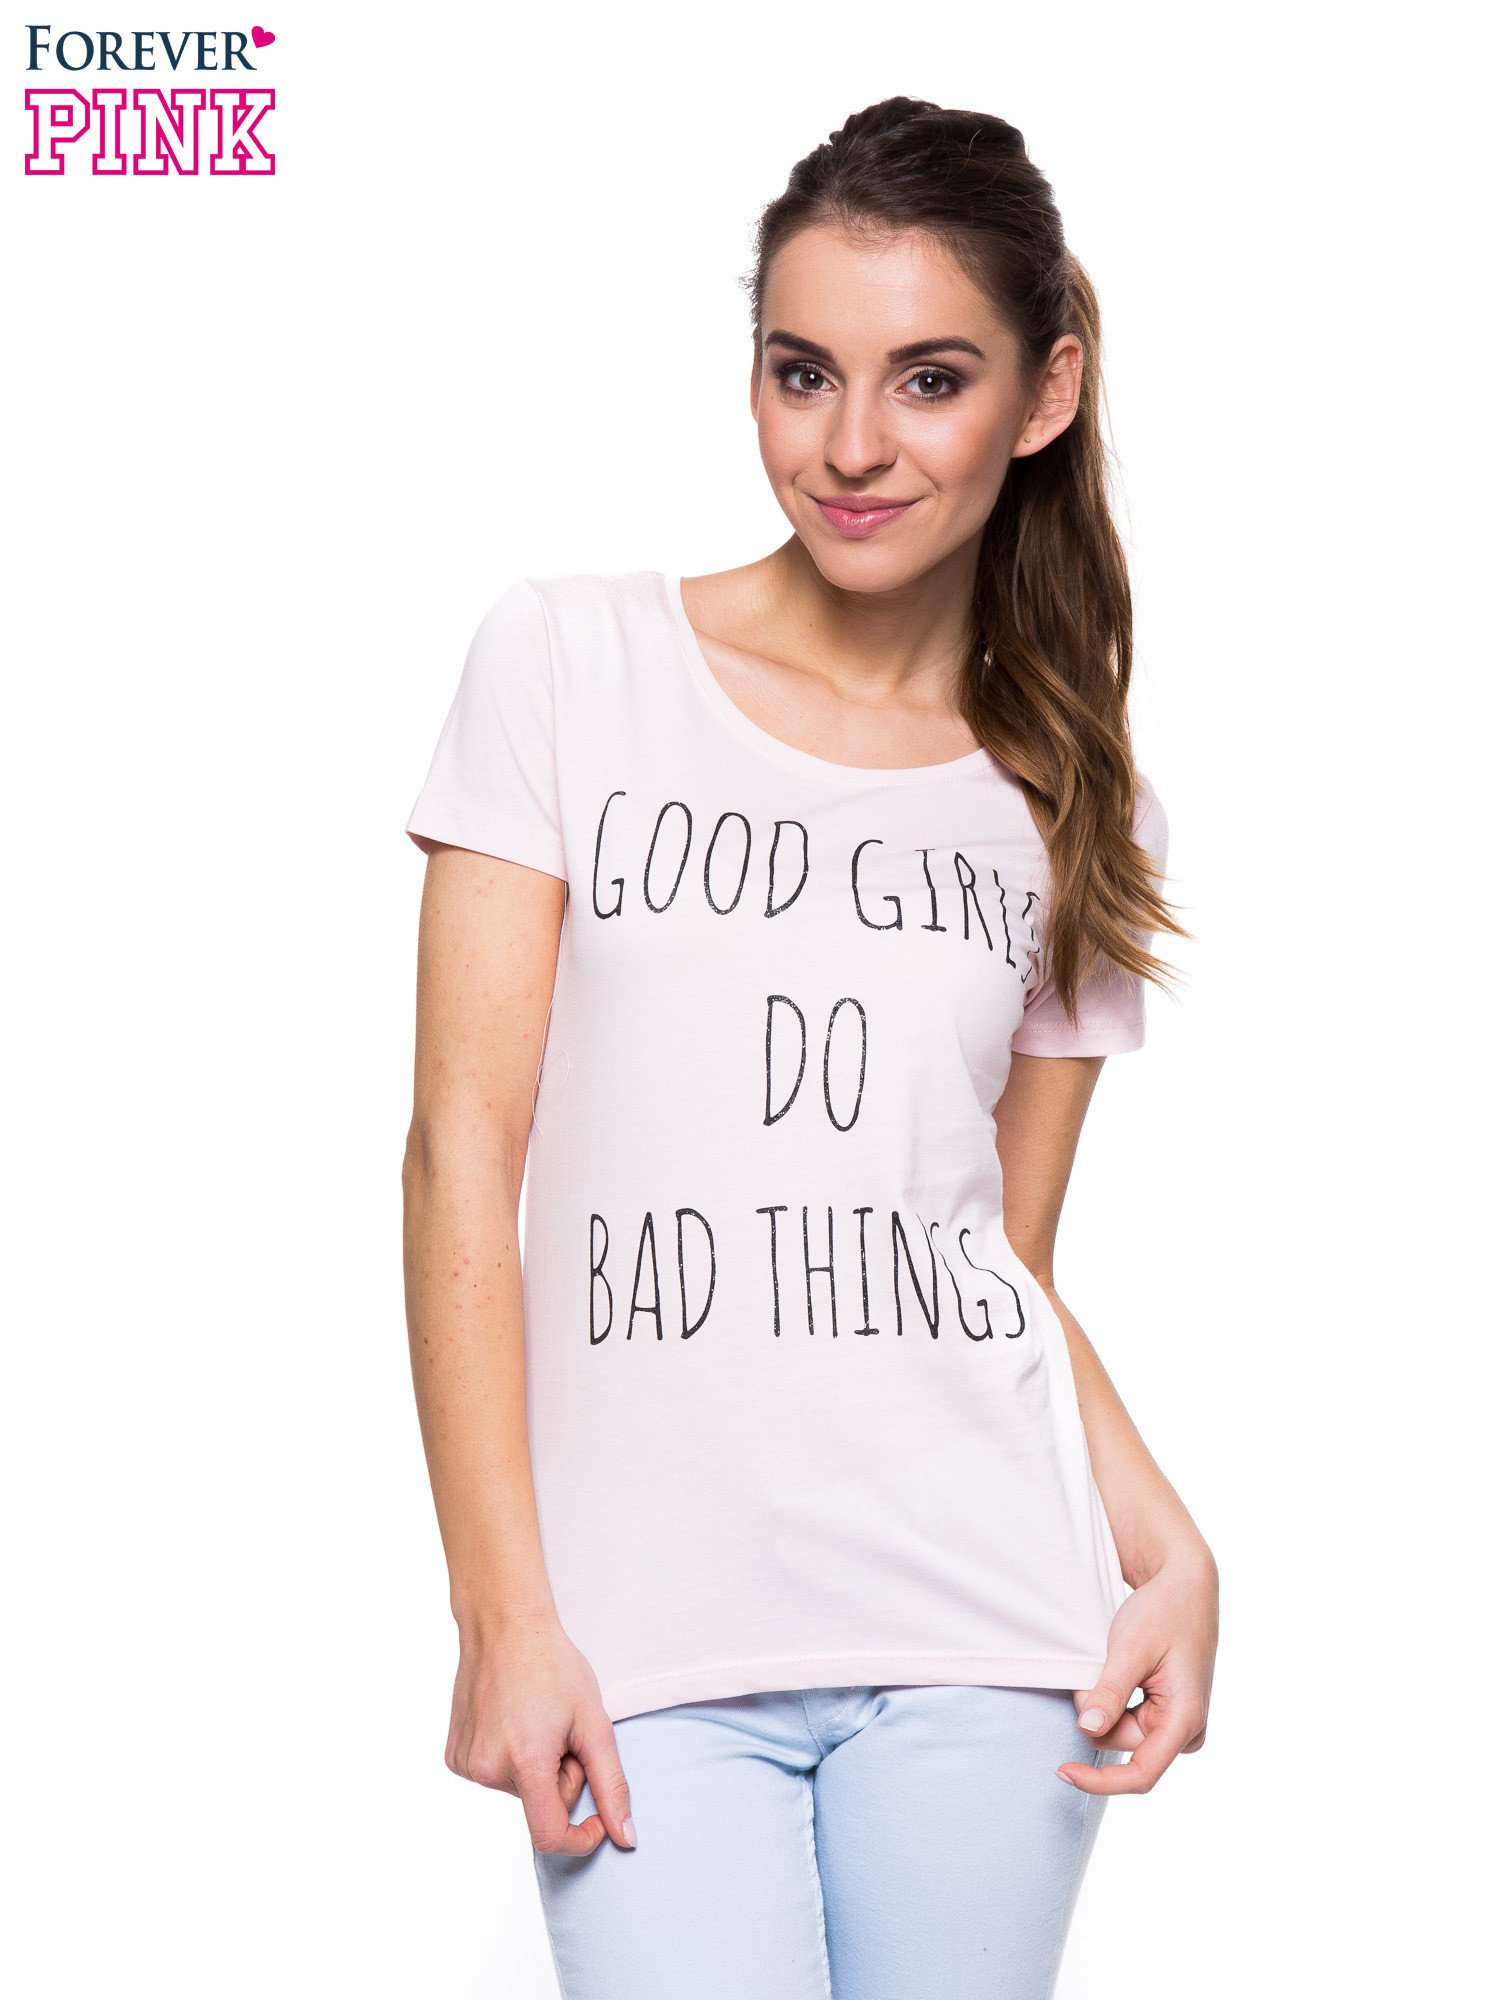 Jasnoróżowy t-shirt z nadrukiem GOOD GIRLS DO BAD THINGS                                  zdj.                                  1